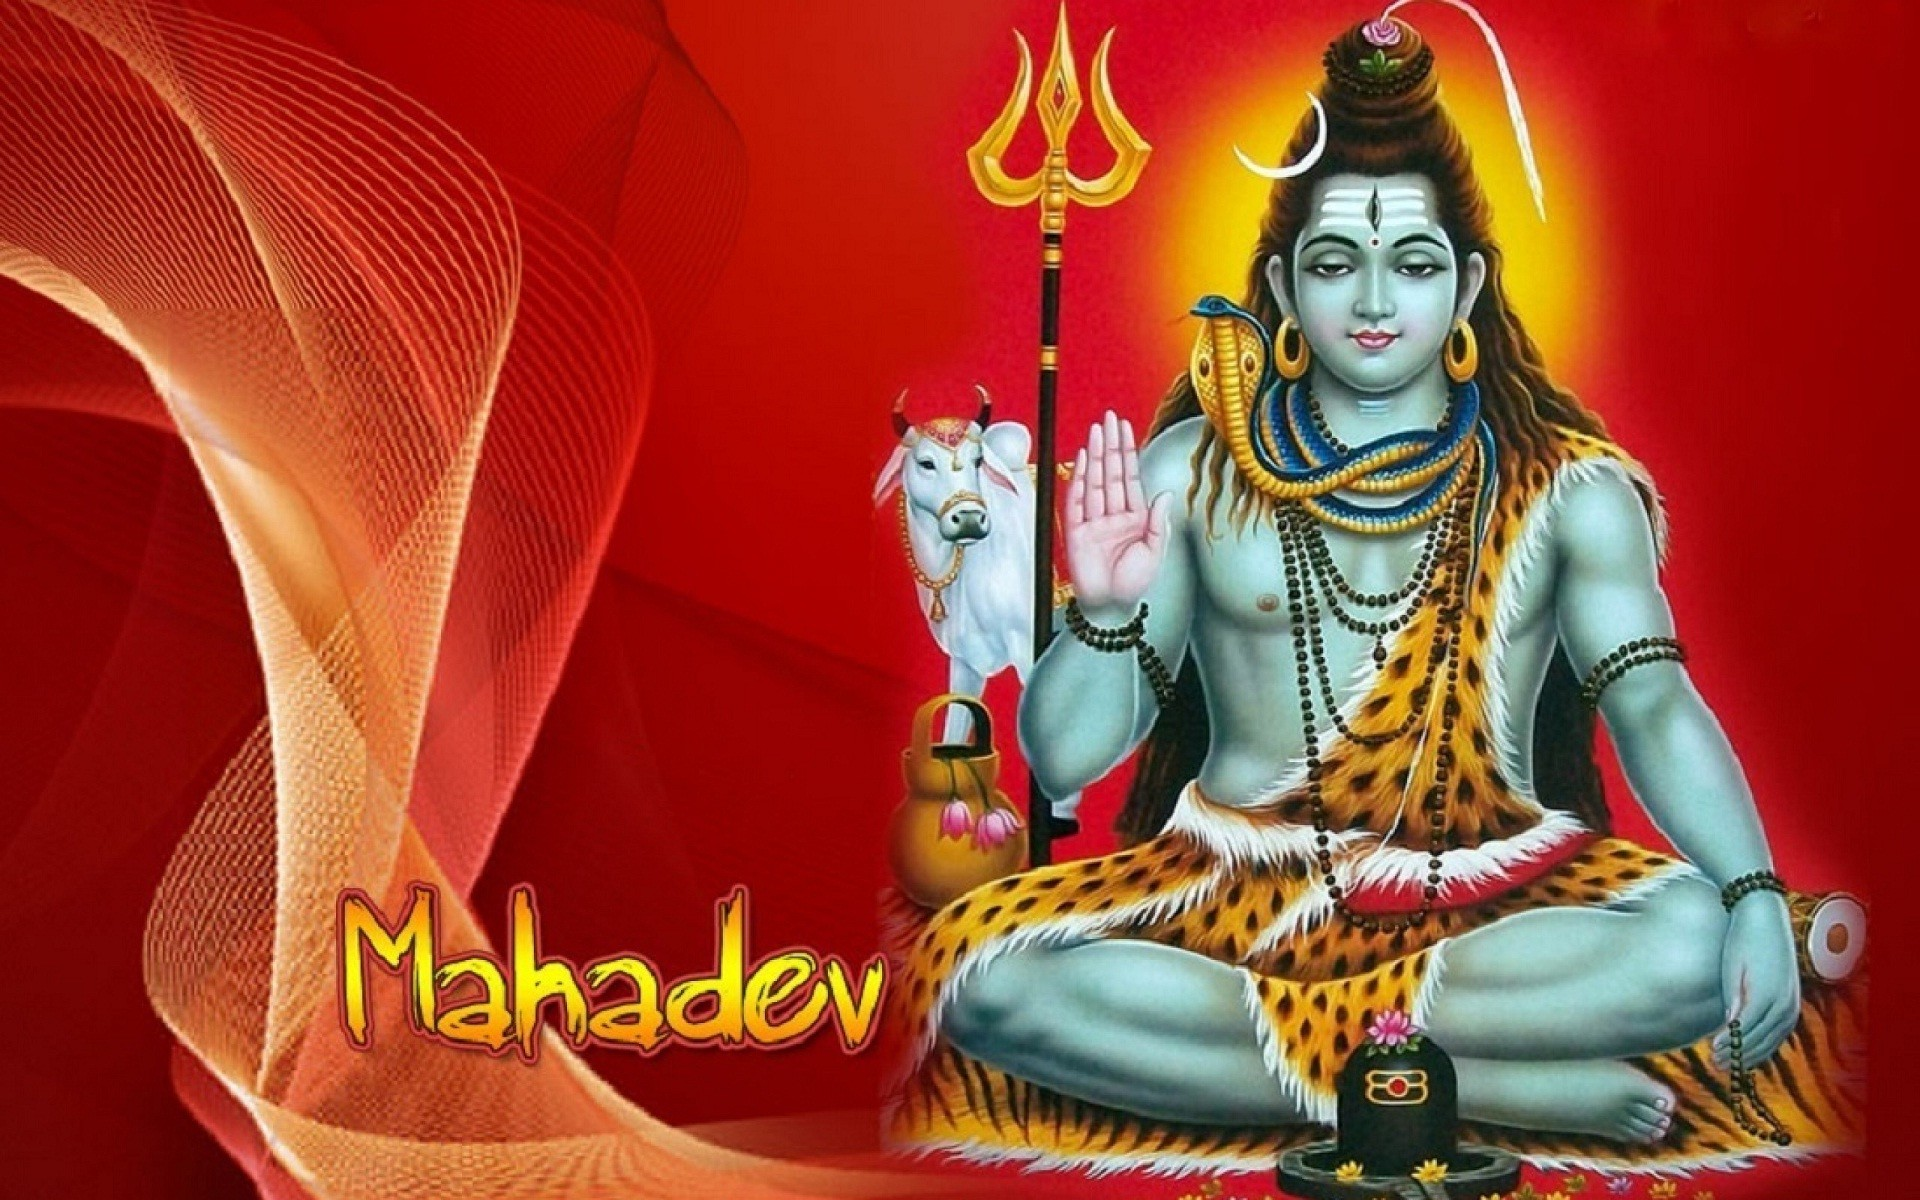 Lord shiva mahadev high quality wide wallpapers